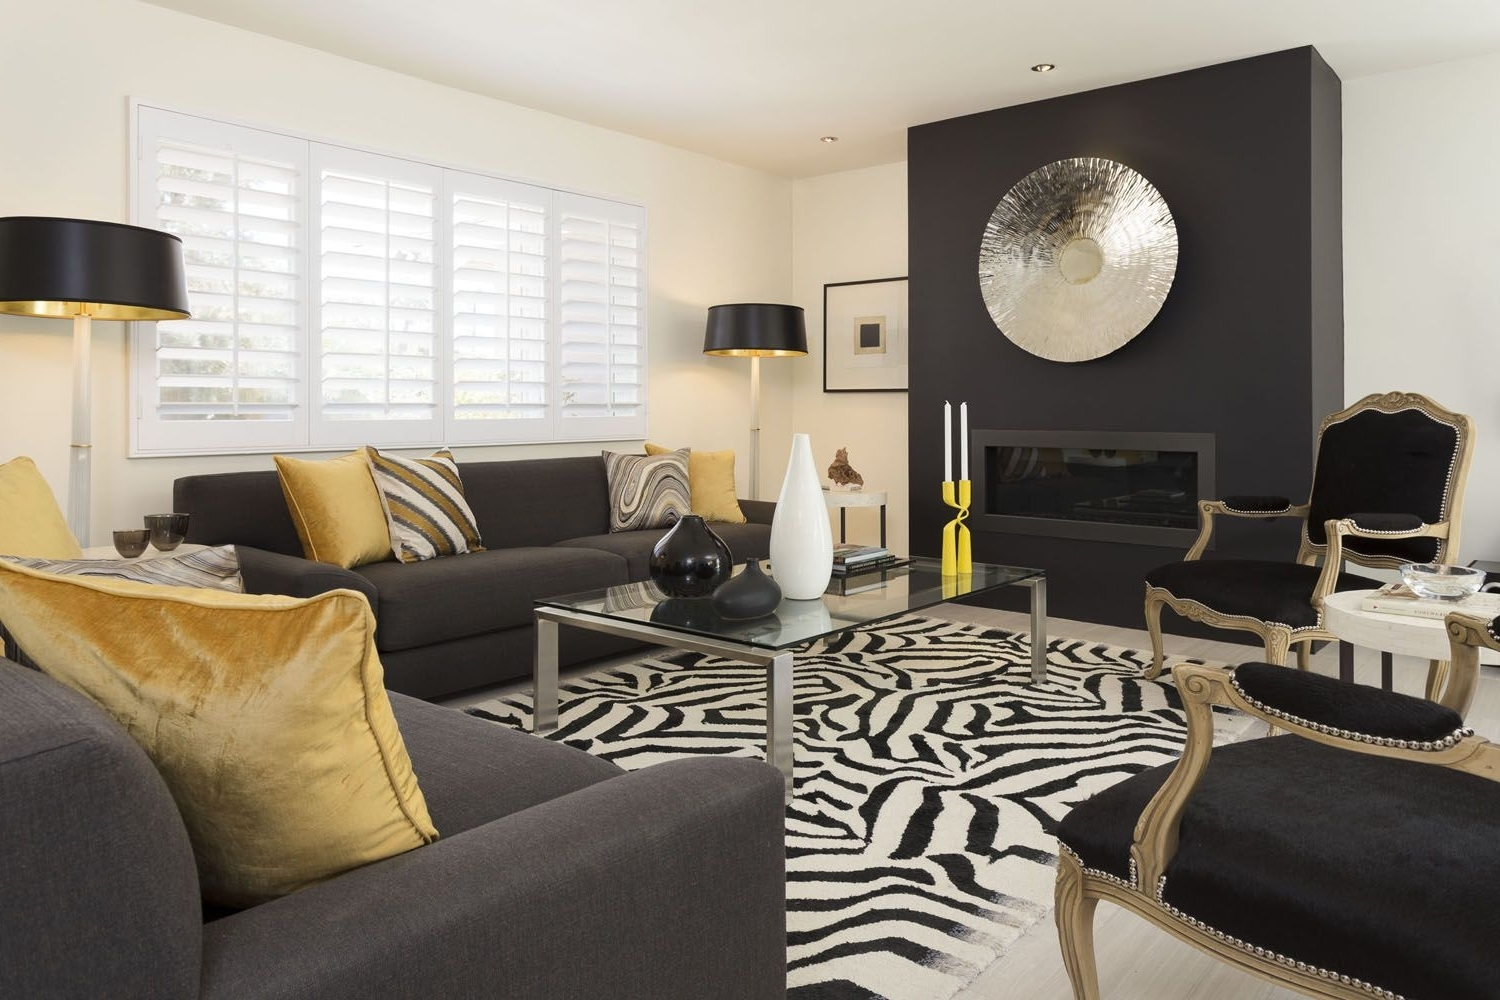 Palm Springs Home Channelling The Hollywood Regency Look 30+ Hollywood Regency Living Room Design Ideas